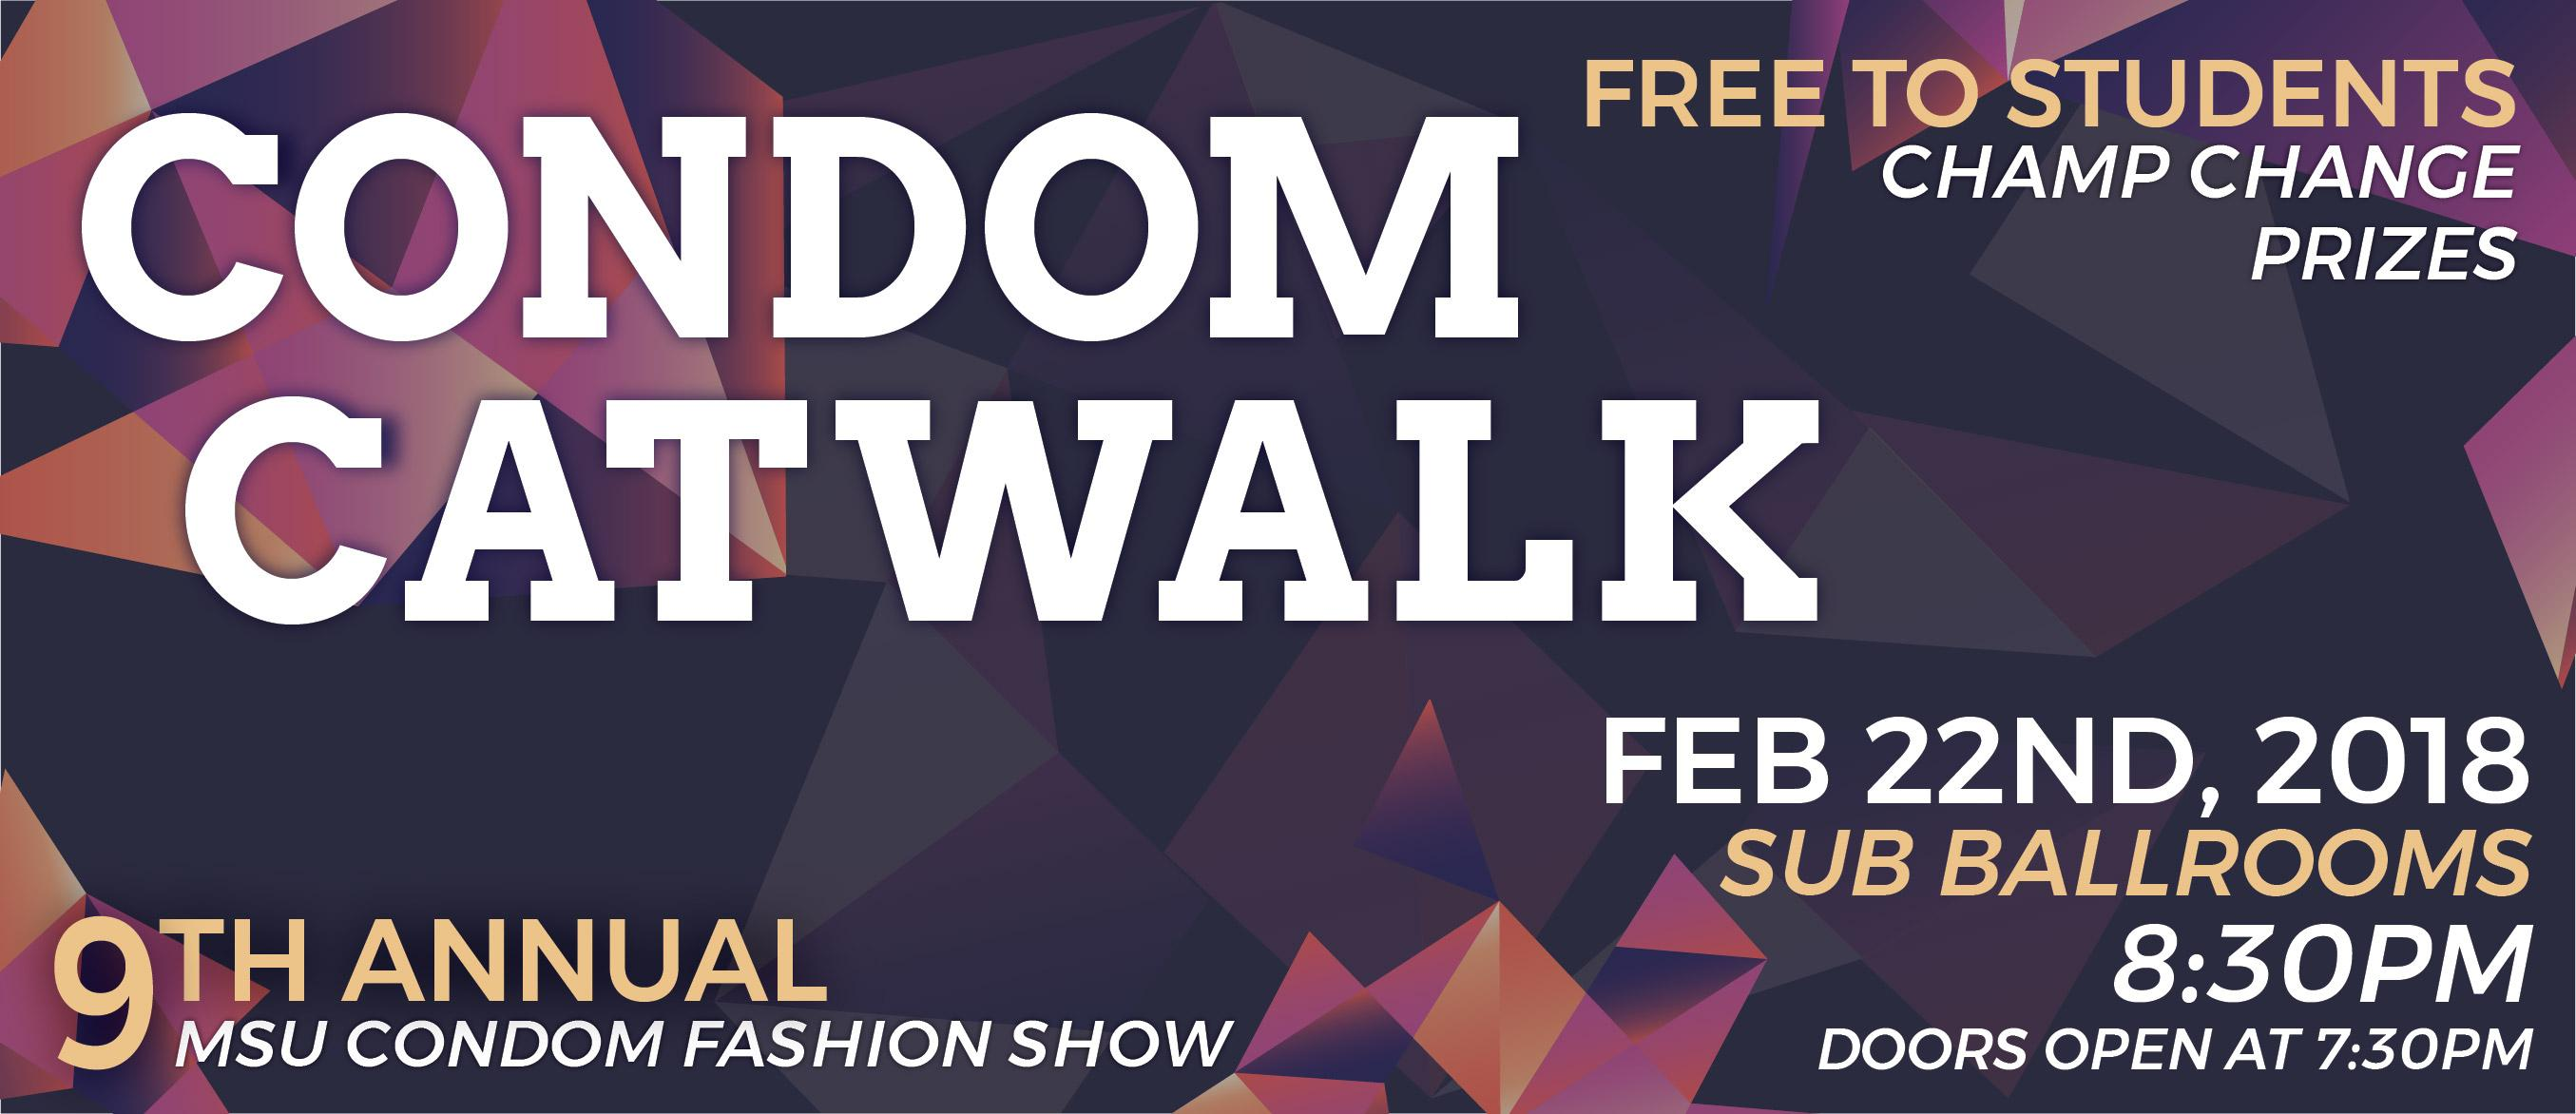 Join us for the 9th Annual Condom Catwalk is on February 22nd at 8:30PM in the SUB.